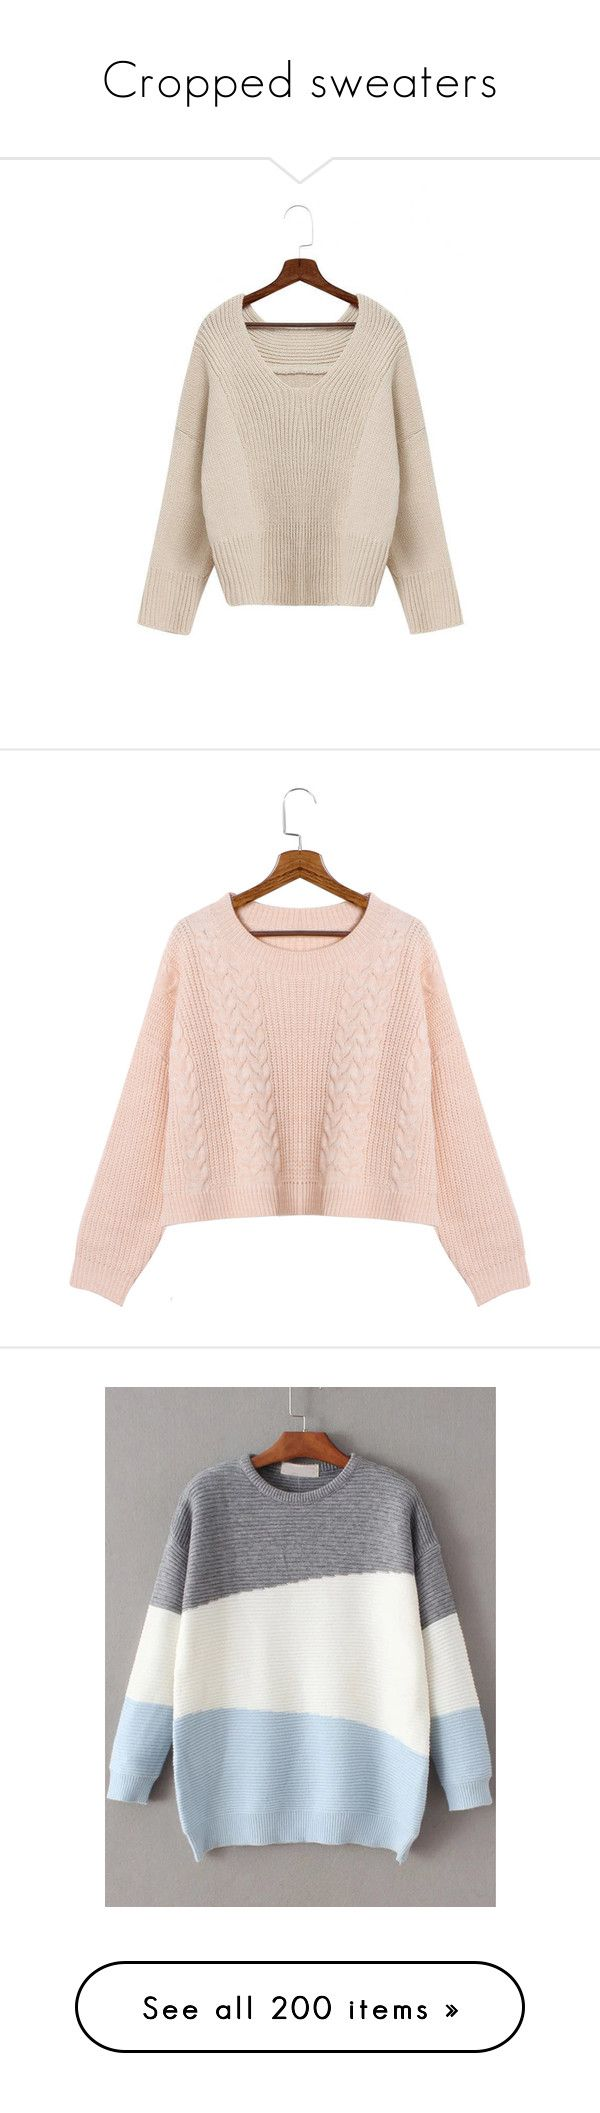 """""""Cropped sweaters"""" by stellacolor21 ❤ liked on Polyvore featuring tops, sweaters, beige, batwing sleeve sweater, v neck jumper, v neck knit sweater, beige knit sweater, pink jumper, yoins and pink"""